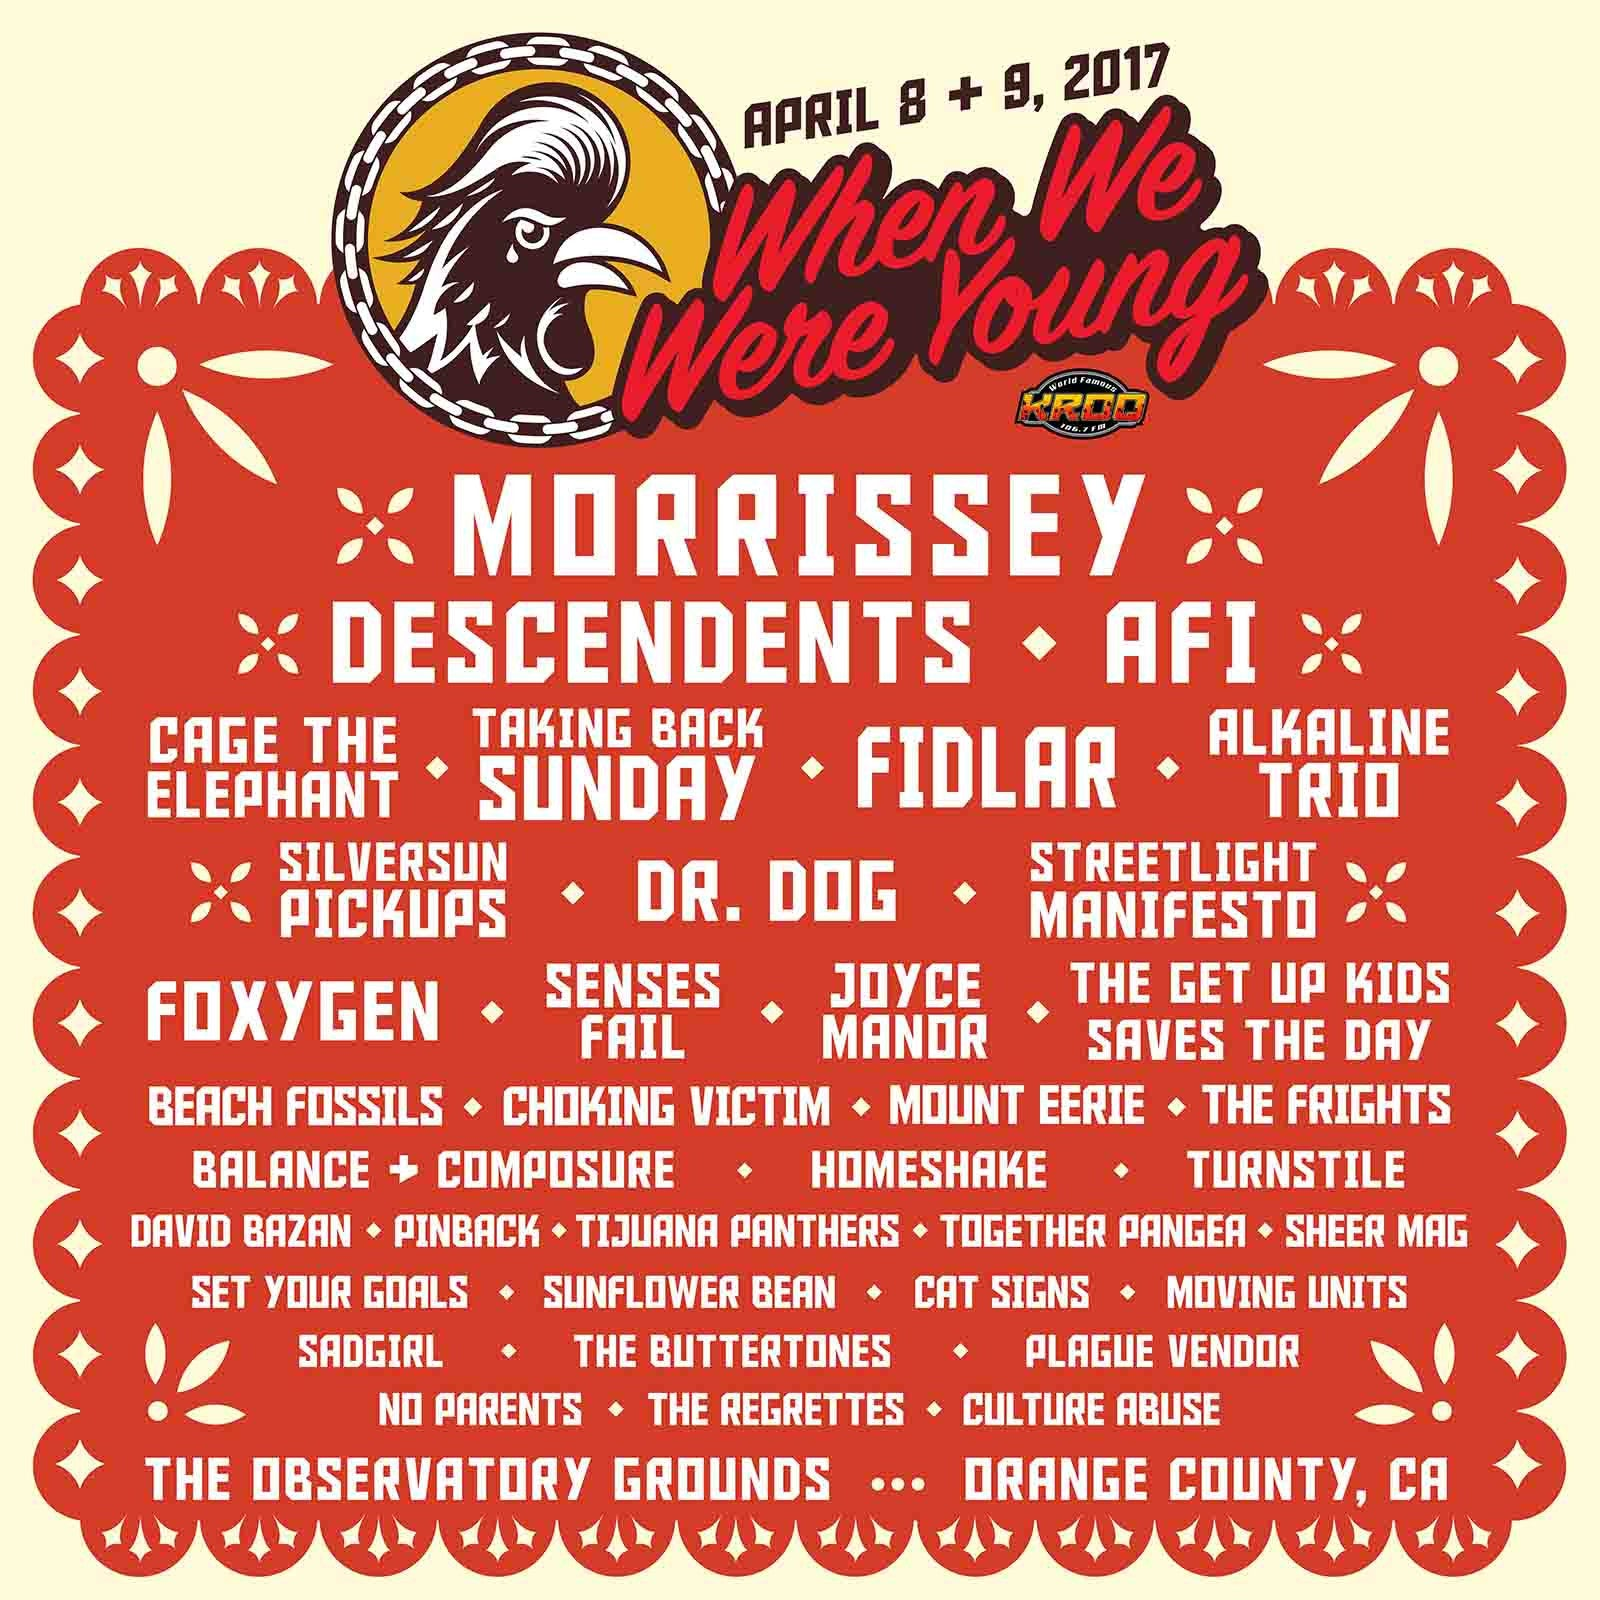 Observatory show when we were young morrissey descendents afi